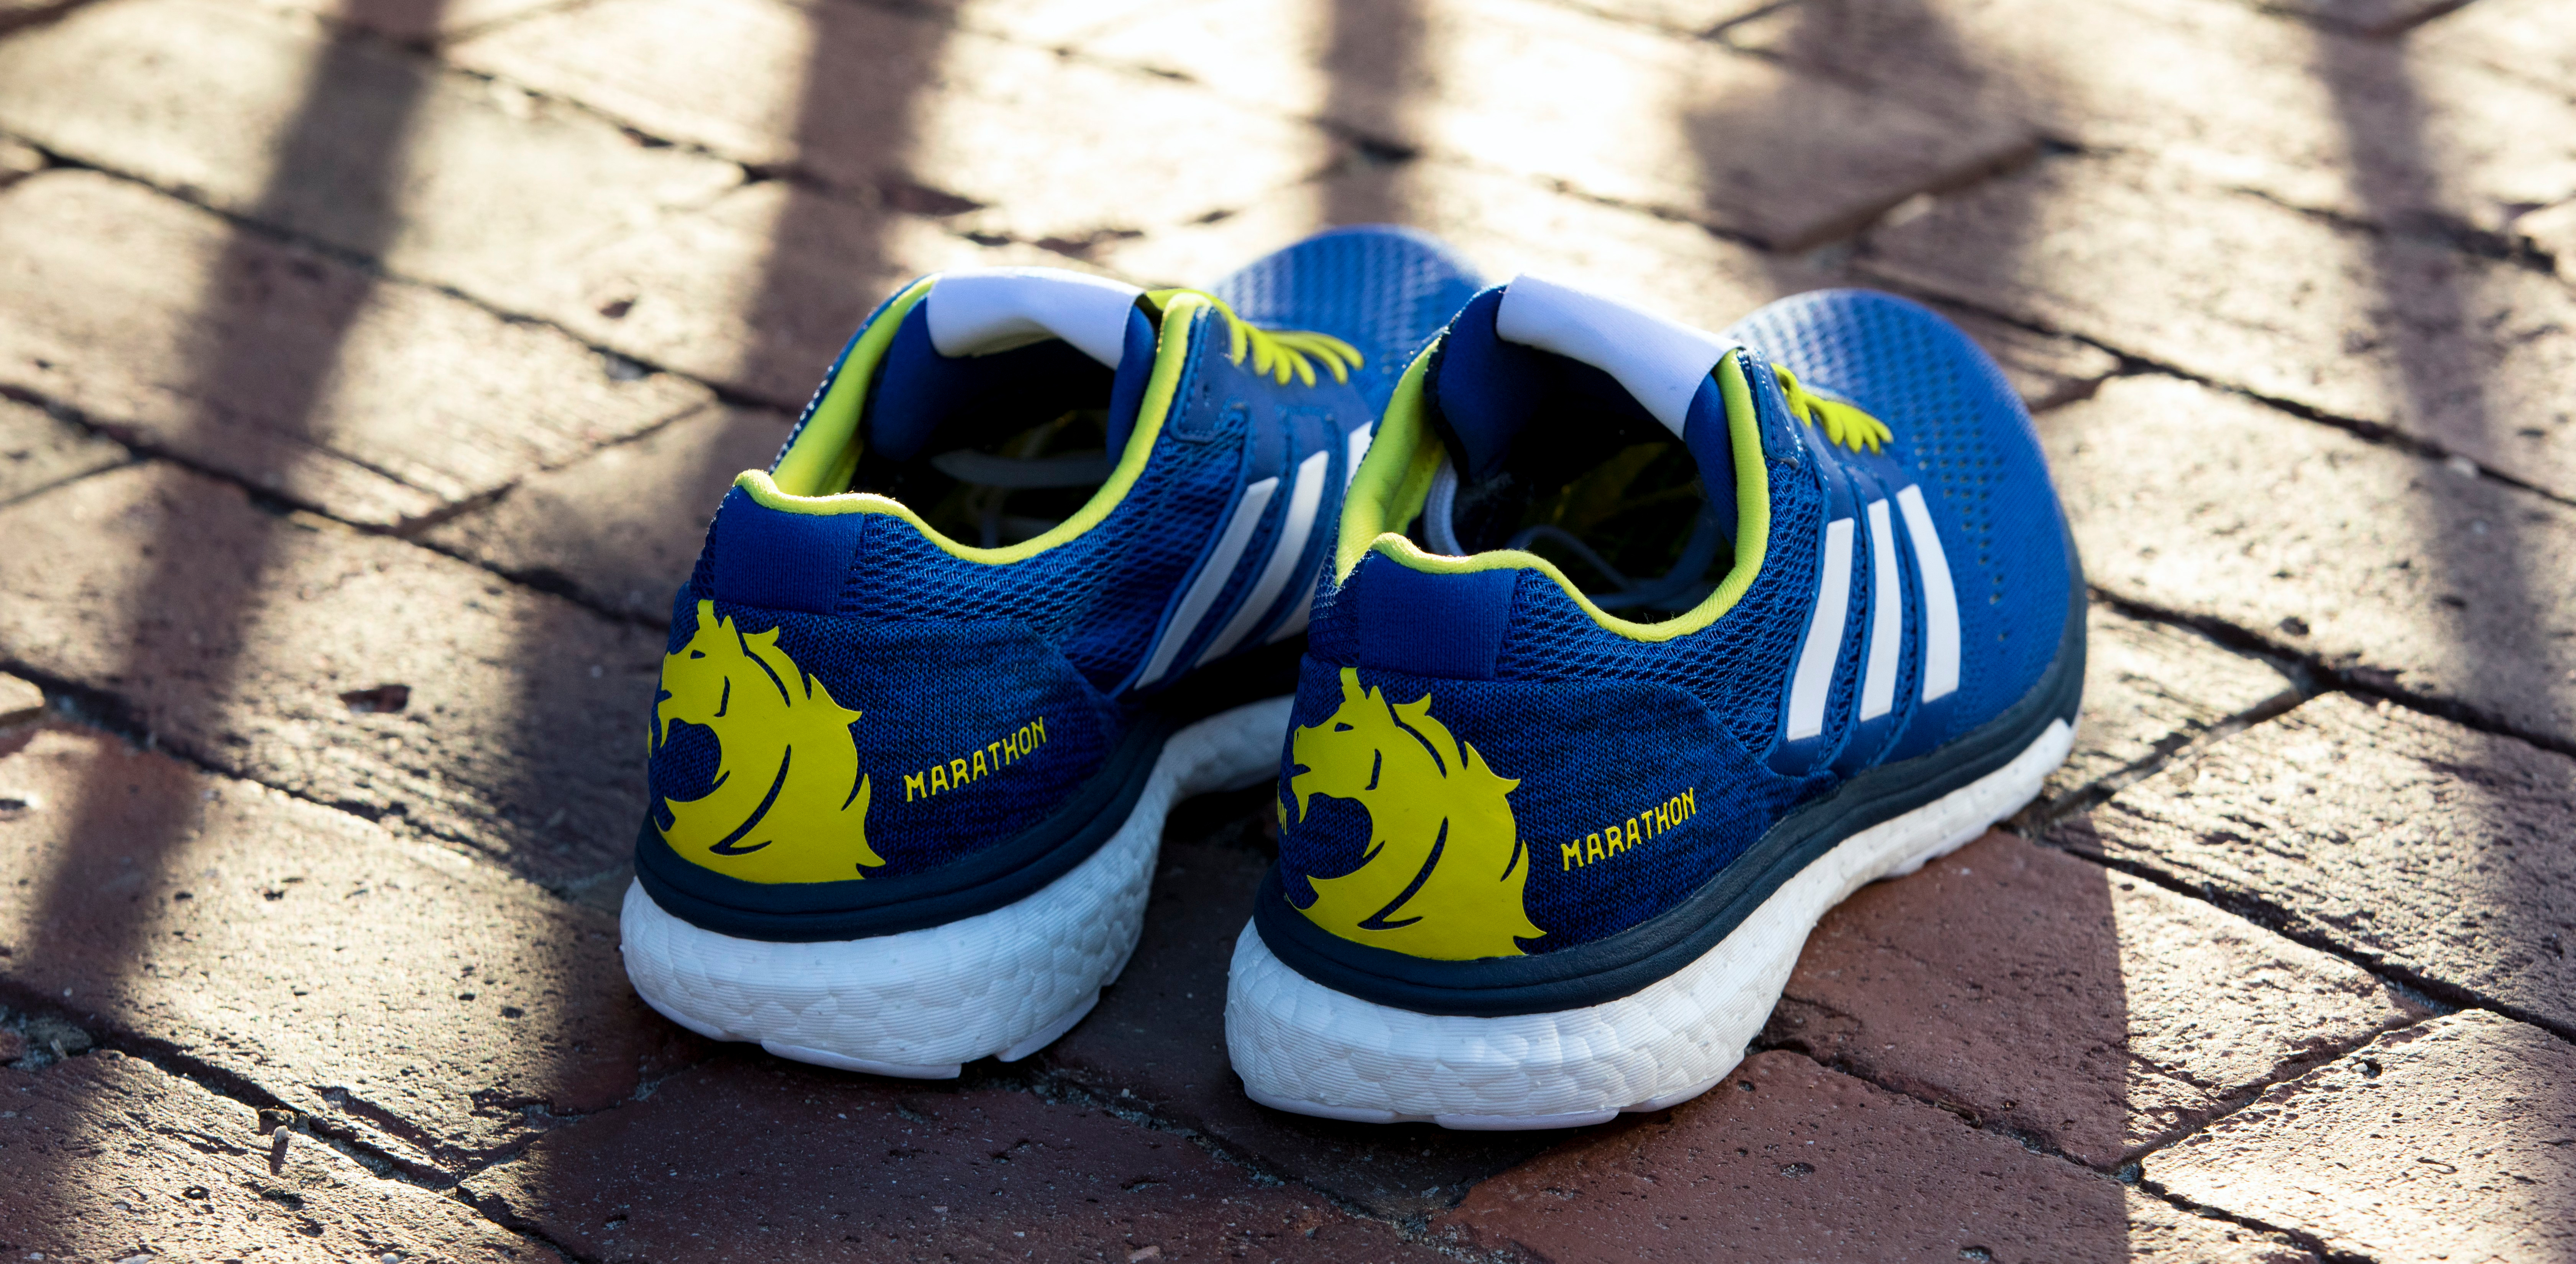 adidas Boston Marathon shoe